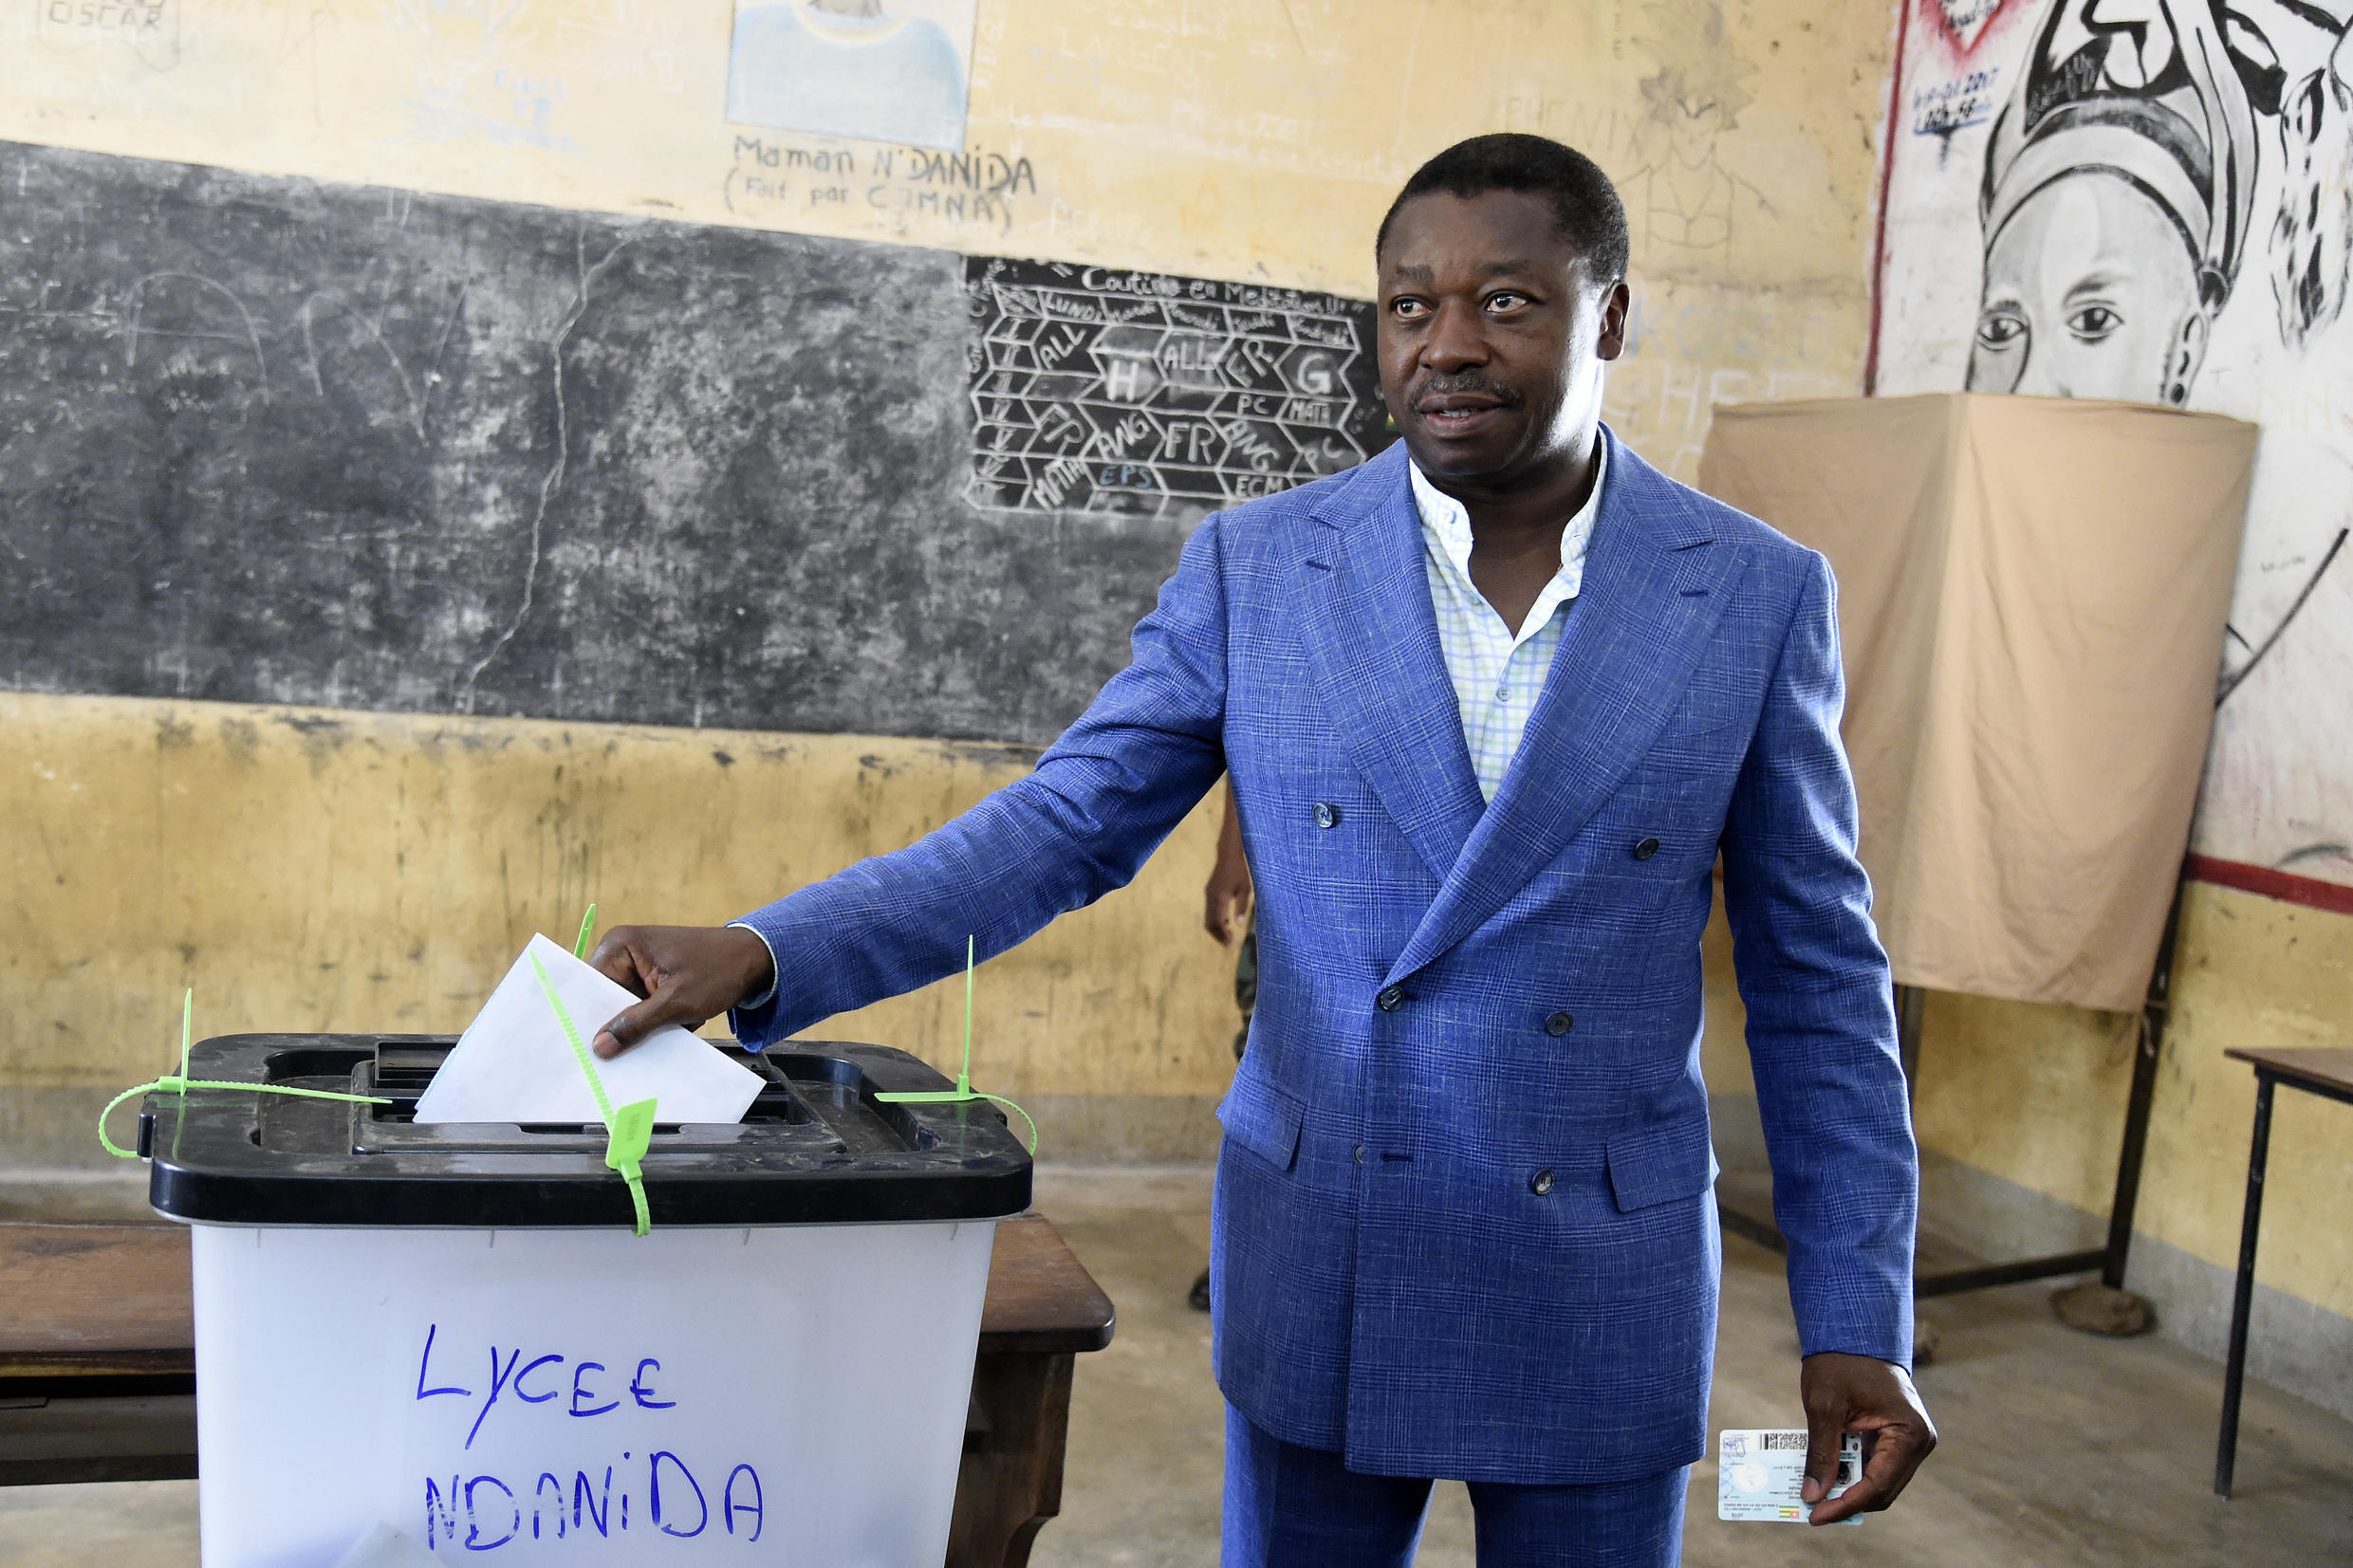 Togolese President Faure Gnassingbé casts his ballot on February 22, 2020 in Kara, during the presidential election.